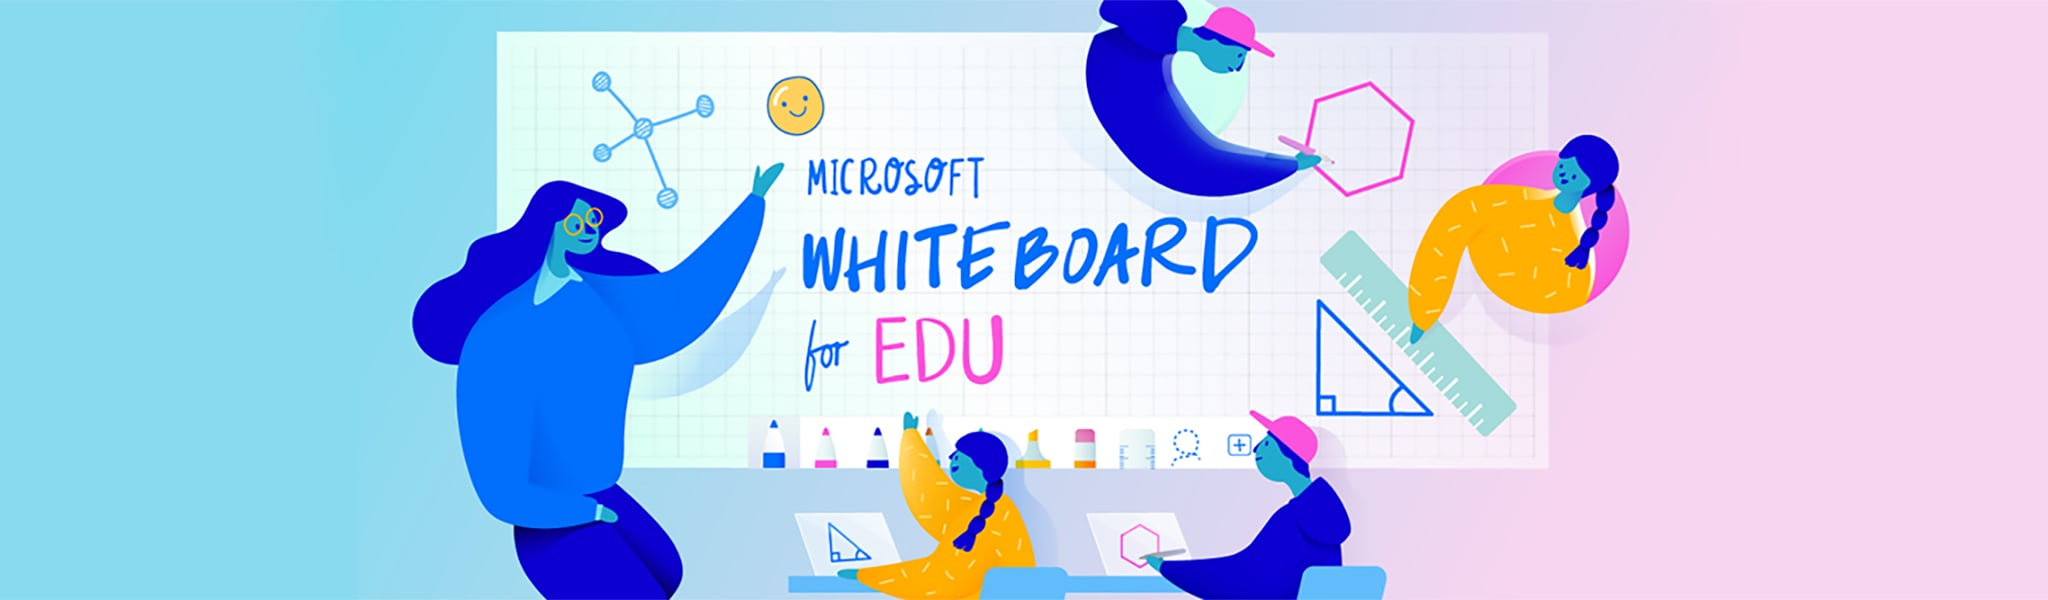 Illustration of a teacher and students using Microsoft Whiteboard